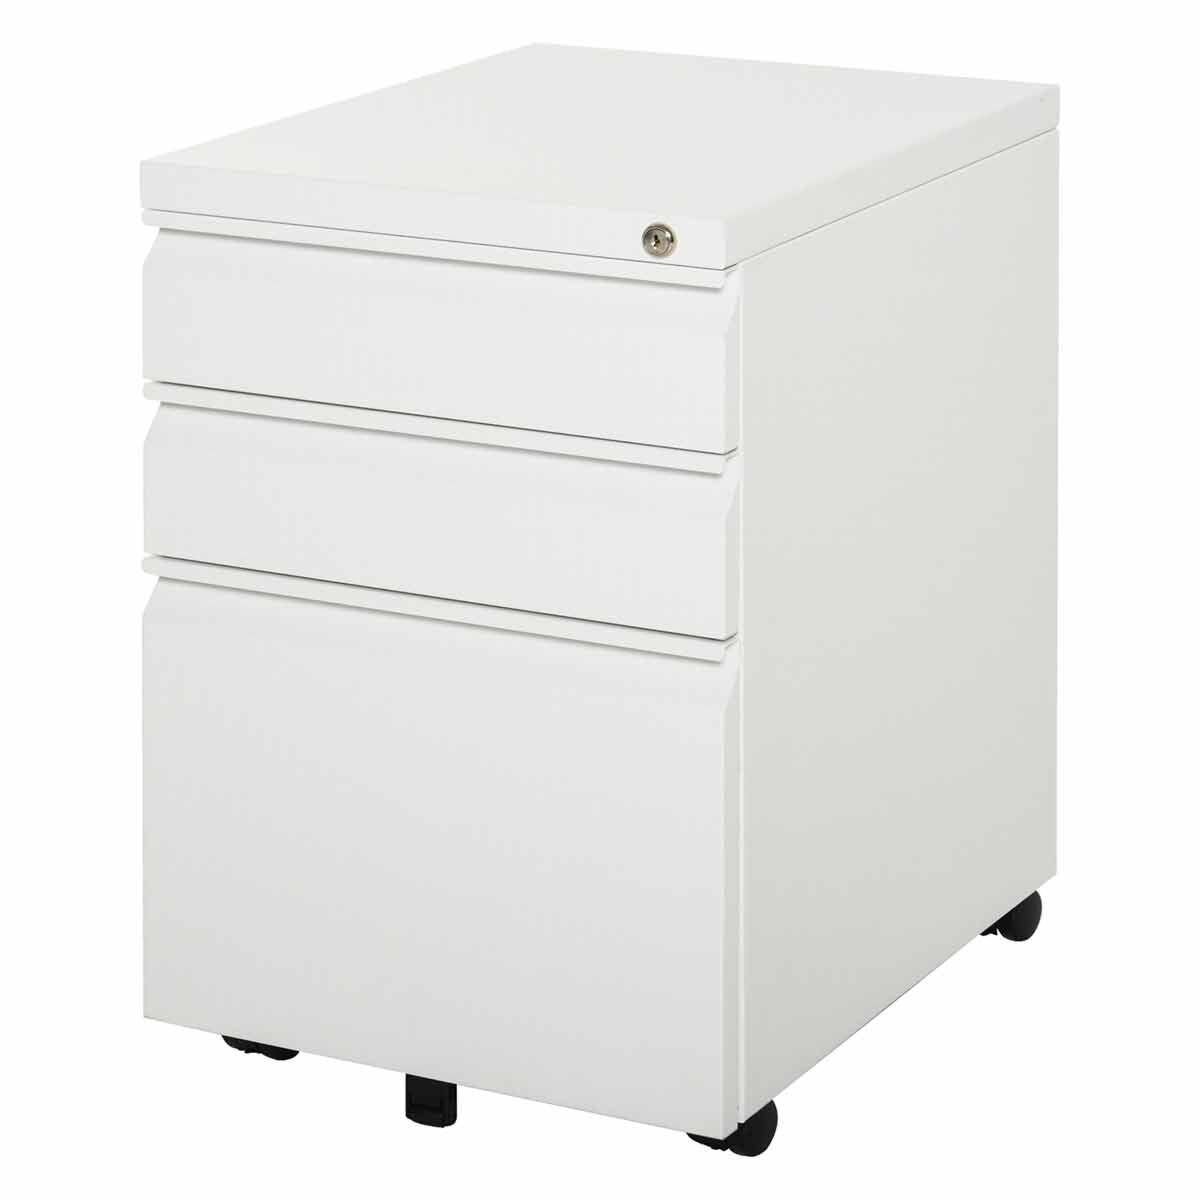 Verity Lockable Mobile Filing Cabinet with 3 Drawers